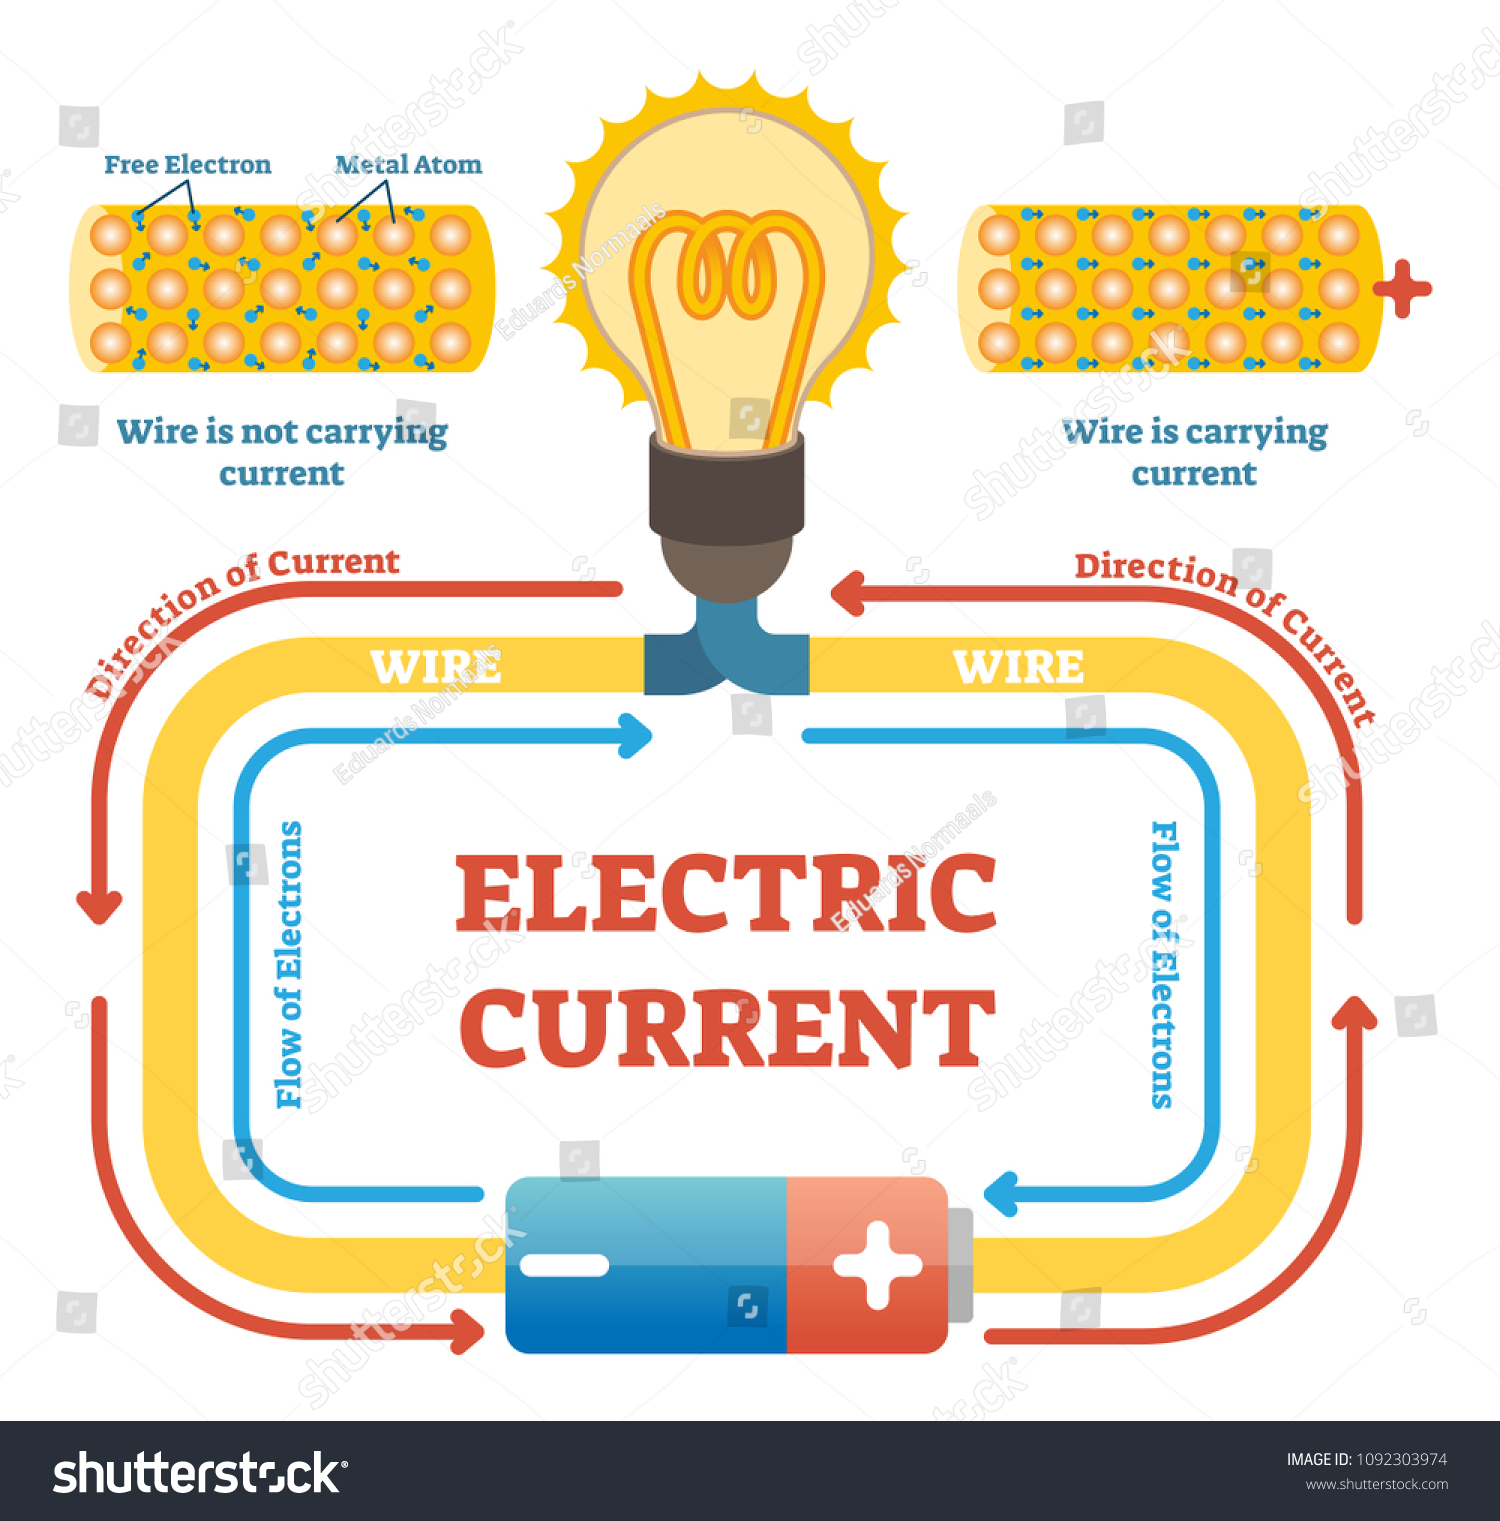 Electric Current Concept Example Vector Illustration Stock Circuit Diagram Physics Electrical With Light Bulb And Energy Source